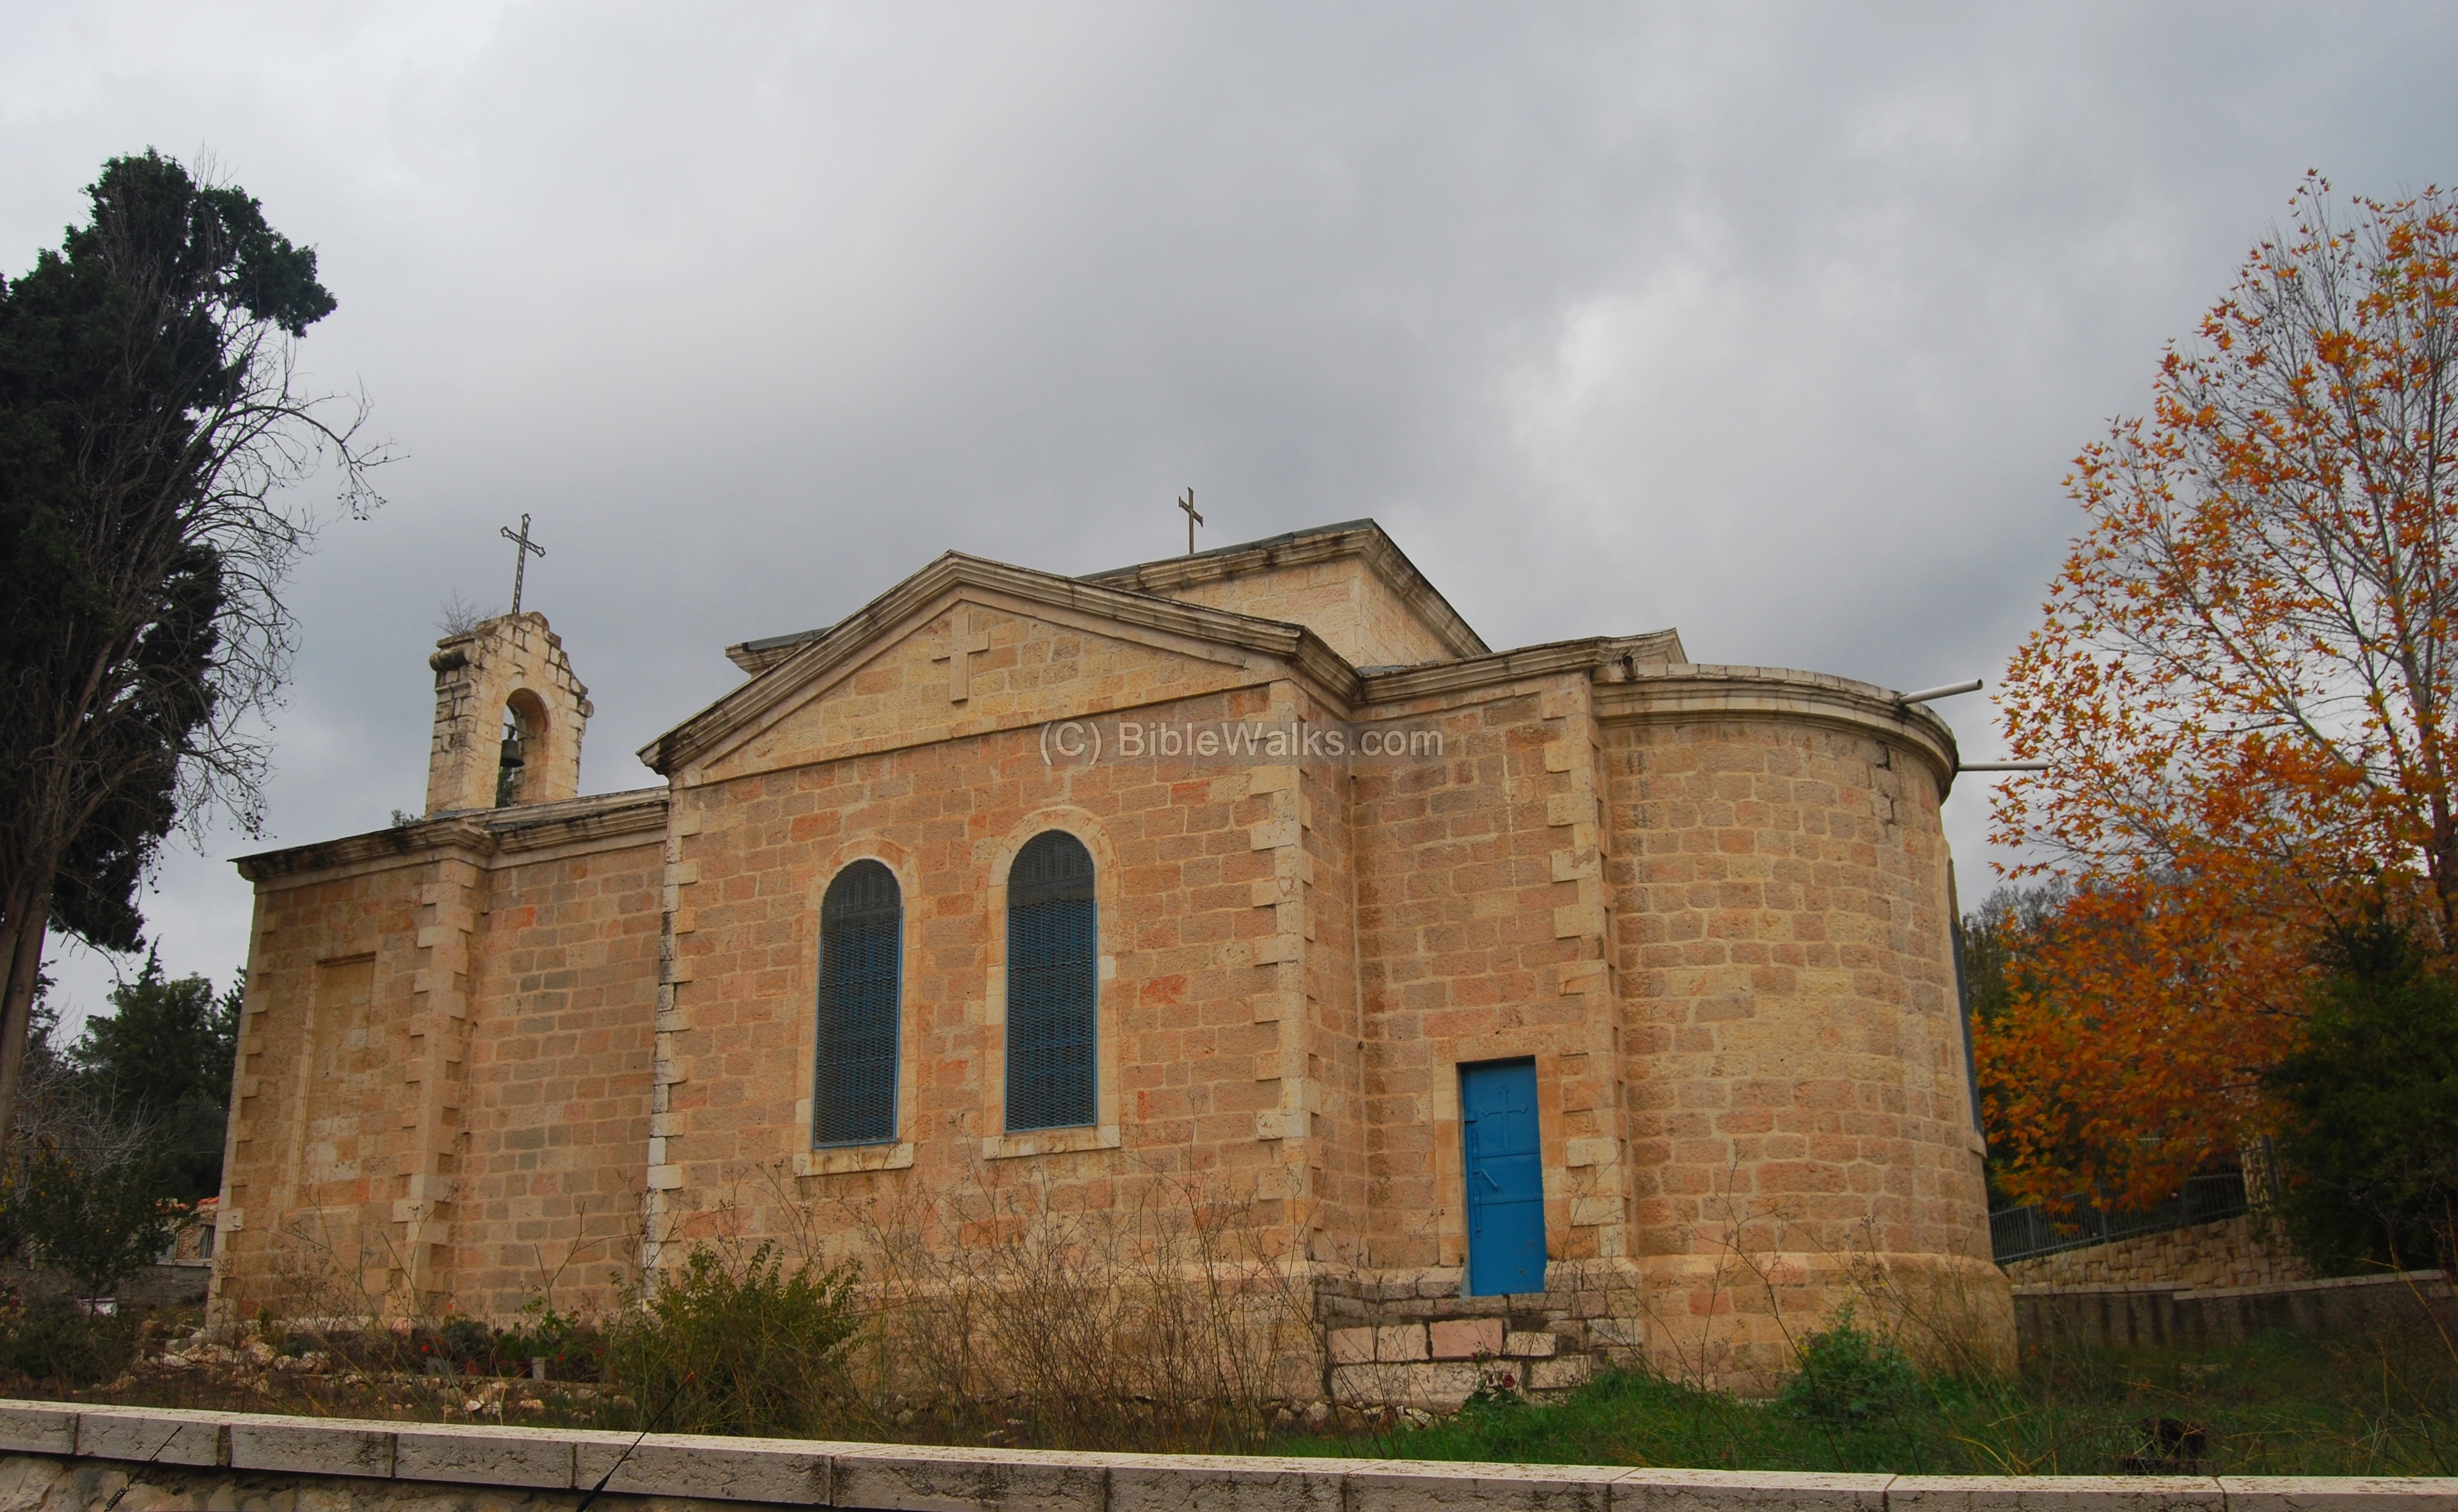 Greek orthodox church in ein kerem built in 1894 to service the